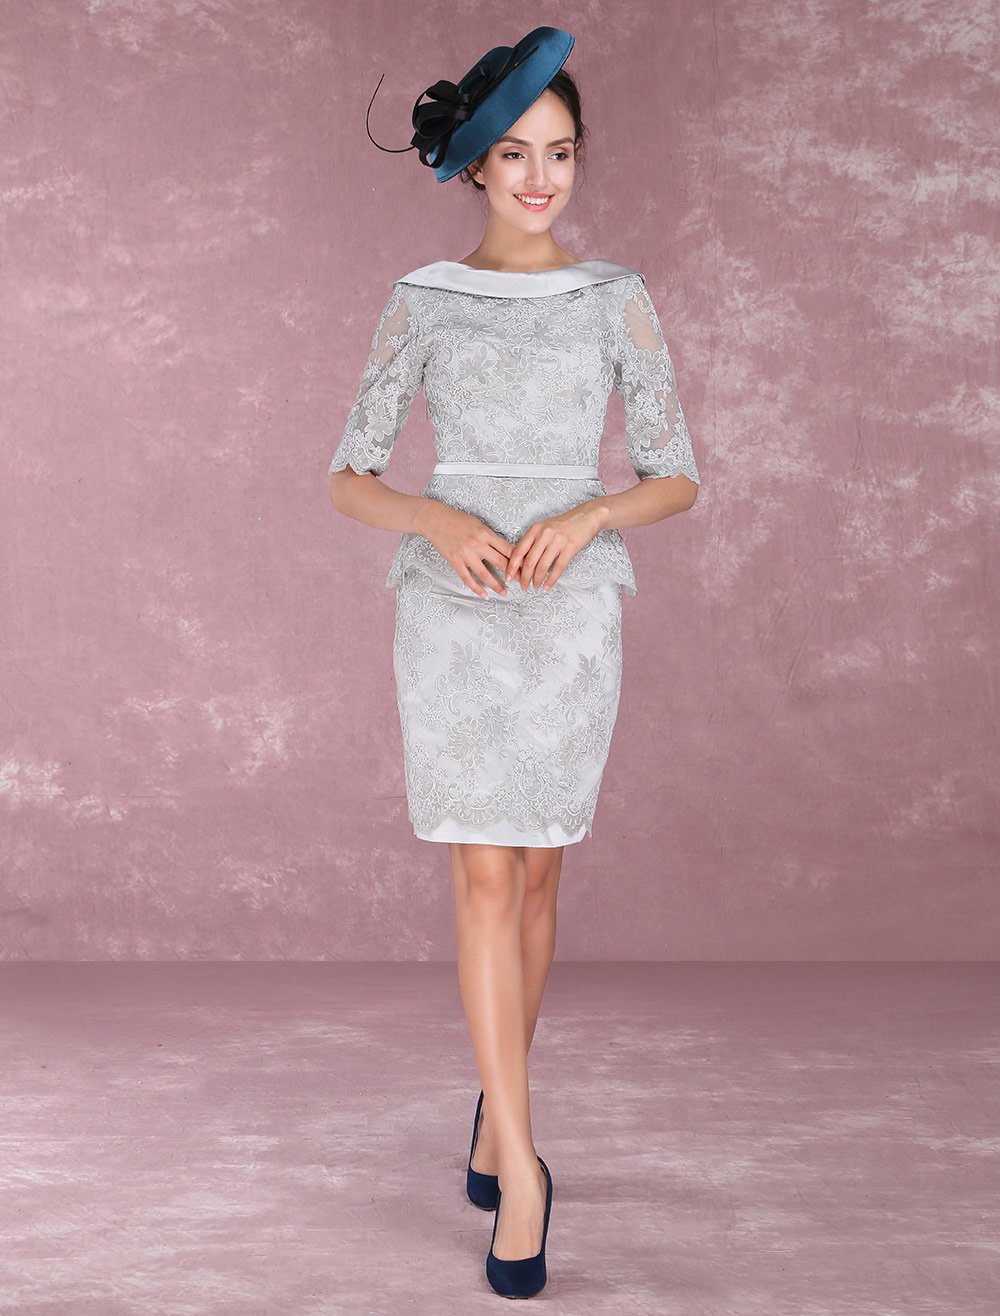 Buy Mother Of The Bride Dresses Lace Sheath Peplum Cocktail Dresses Half Sleeve V Back Knee Length Wedding Guest Dresses for $144.89 in Milanoo store